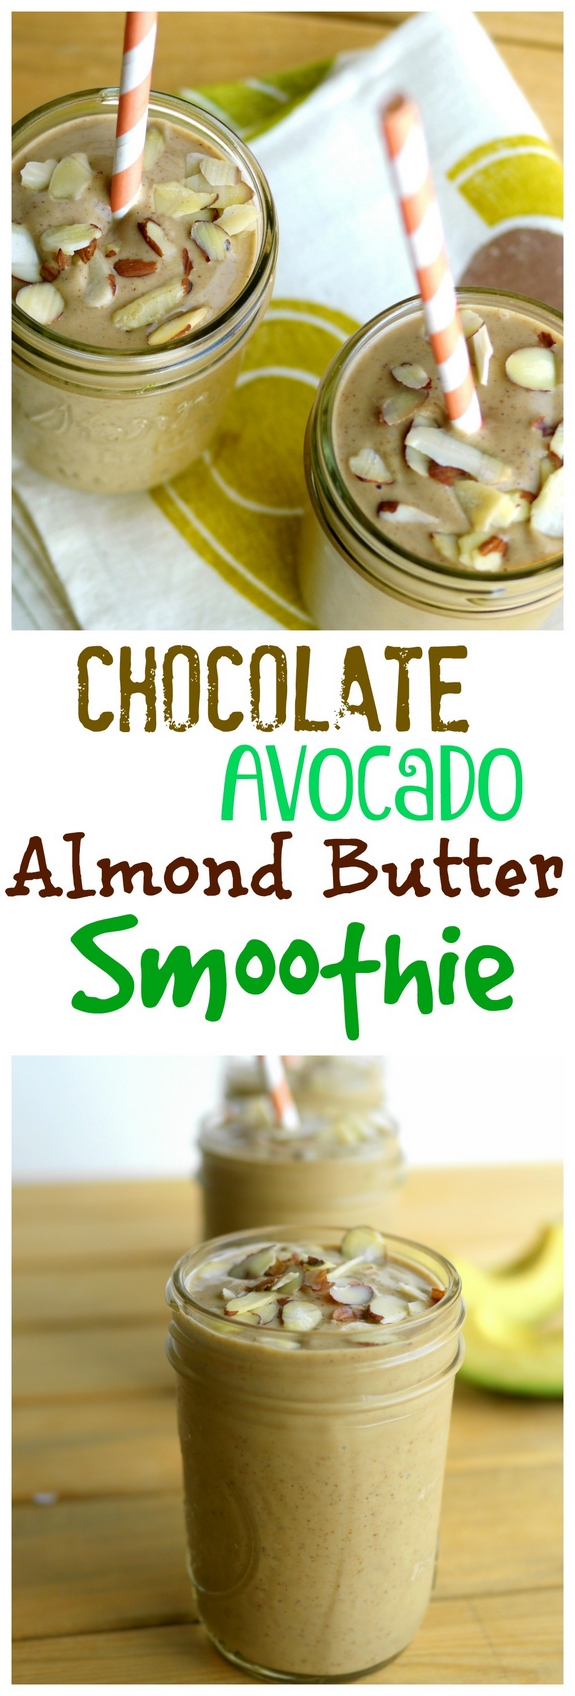 Chocolate Avocado Almond Butter Smoothie